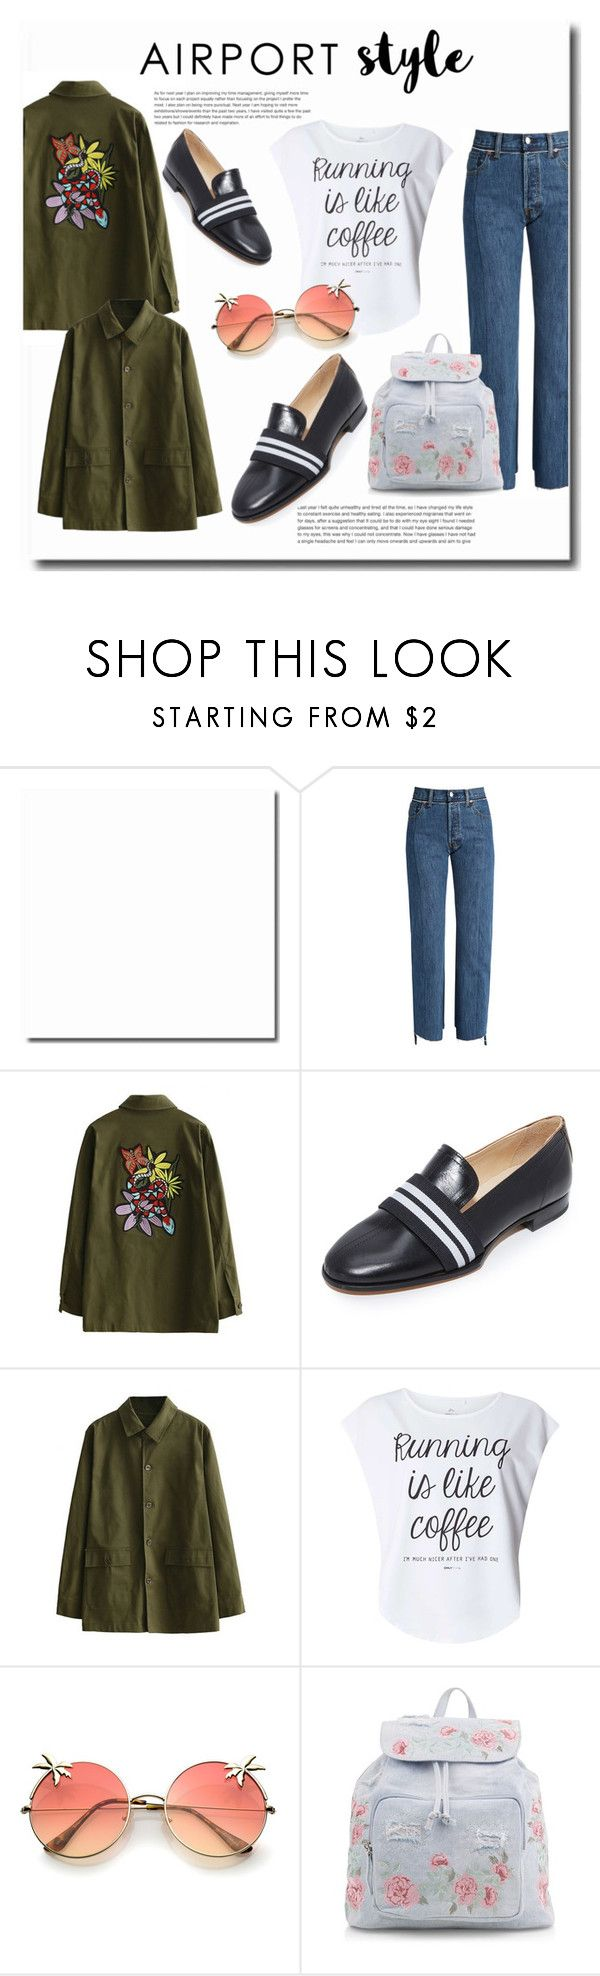 """Jet Set: Airport Style"" by spencer-hastings-5 on Polyvore featuring moda, Vetements, rag & bone, Dorothy Perkins, New Look i airportstyle"